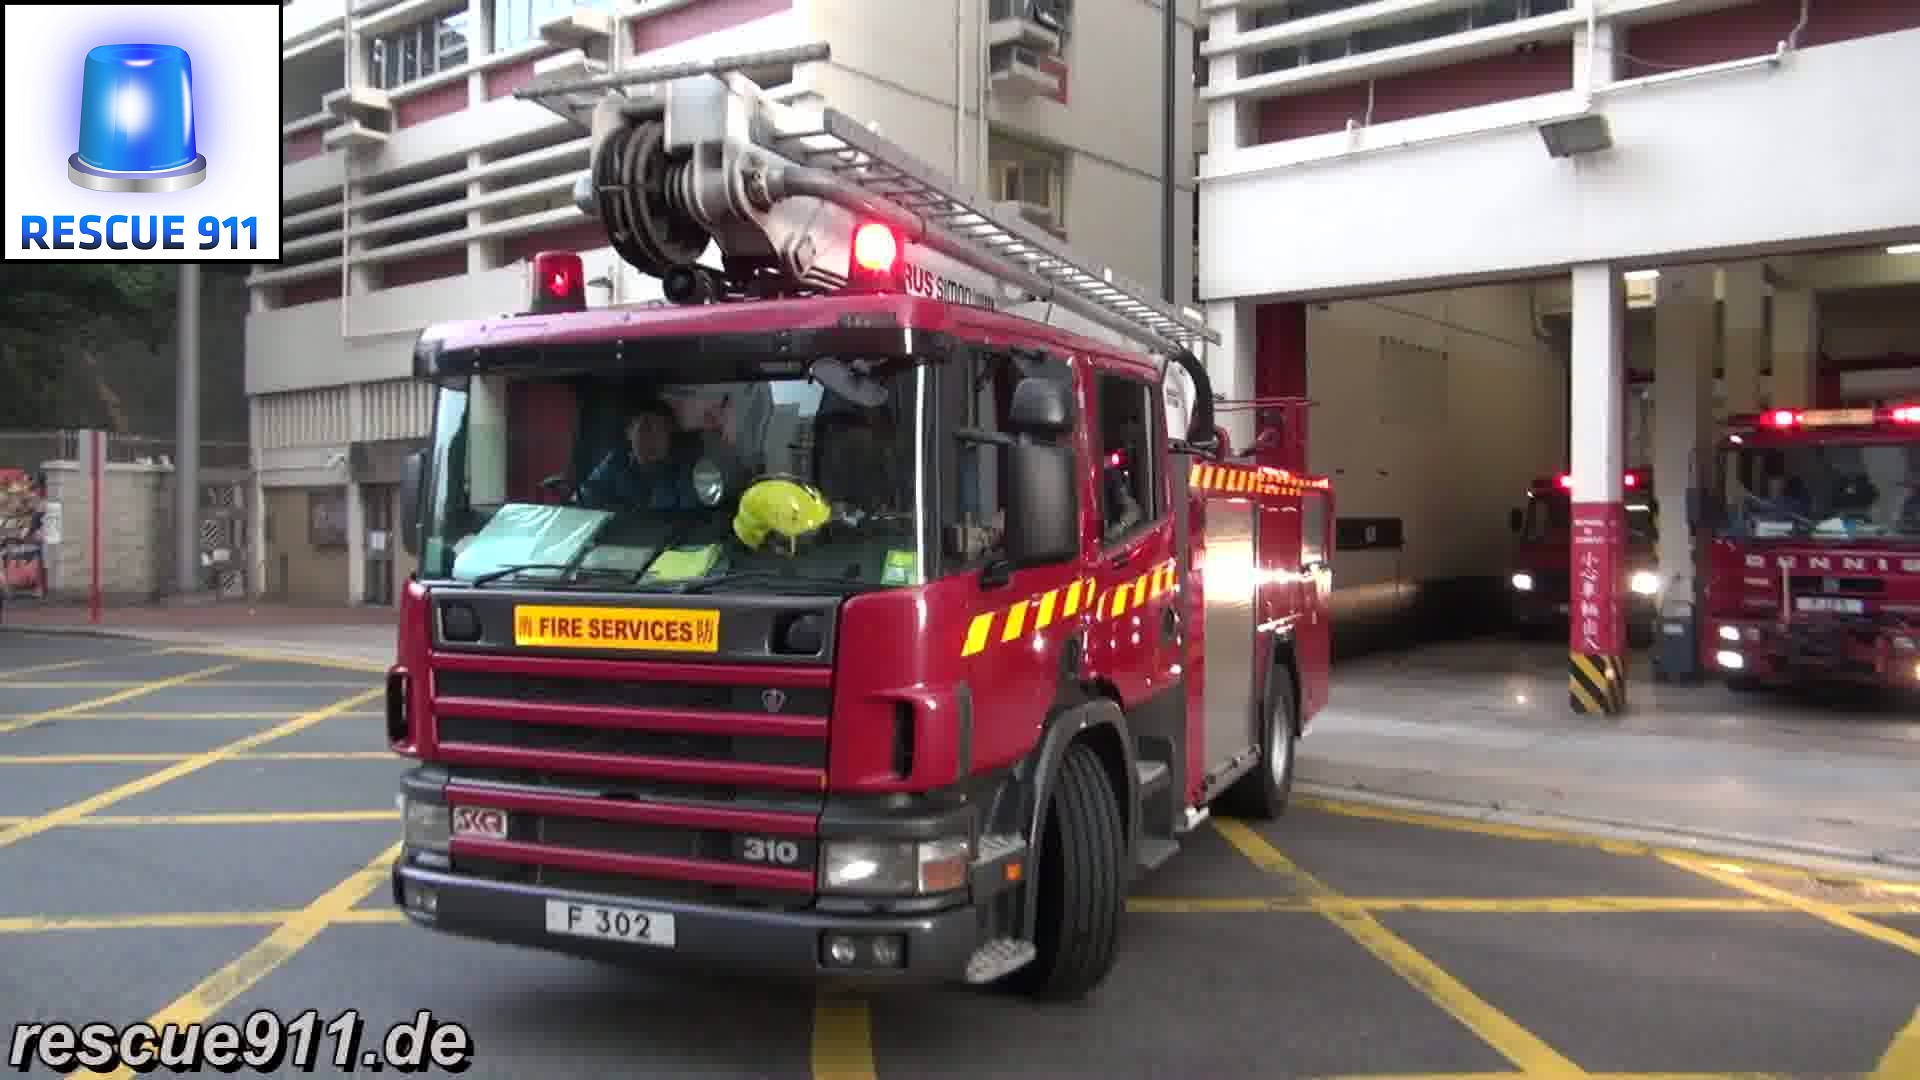 HP + MP + LRU HKFSD Yau Ma Tei Fire Station (stream)